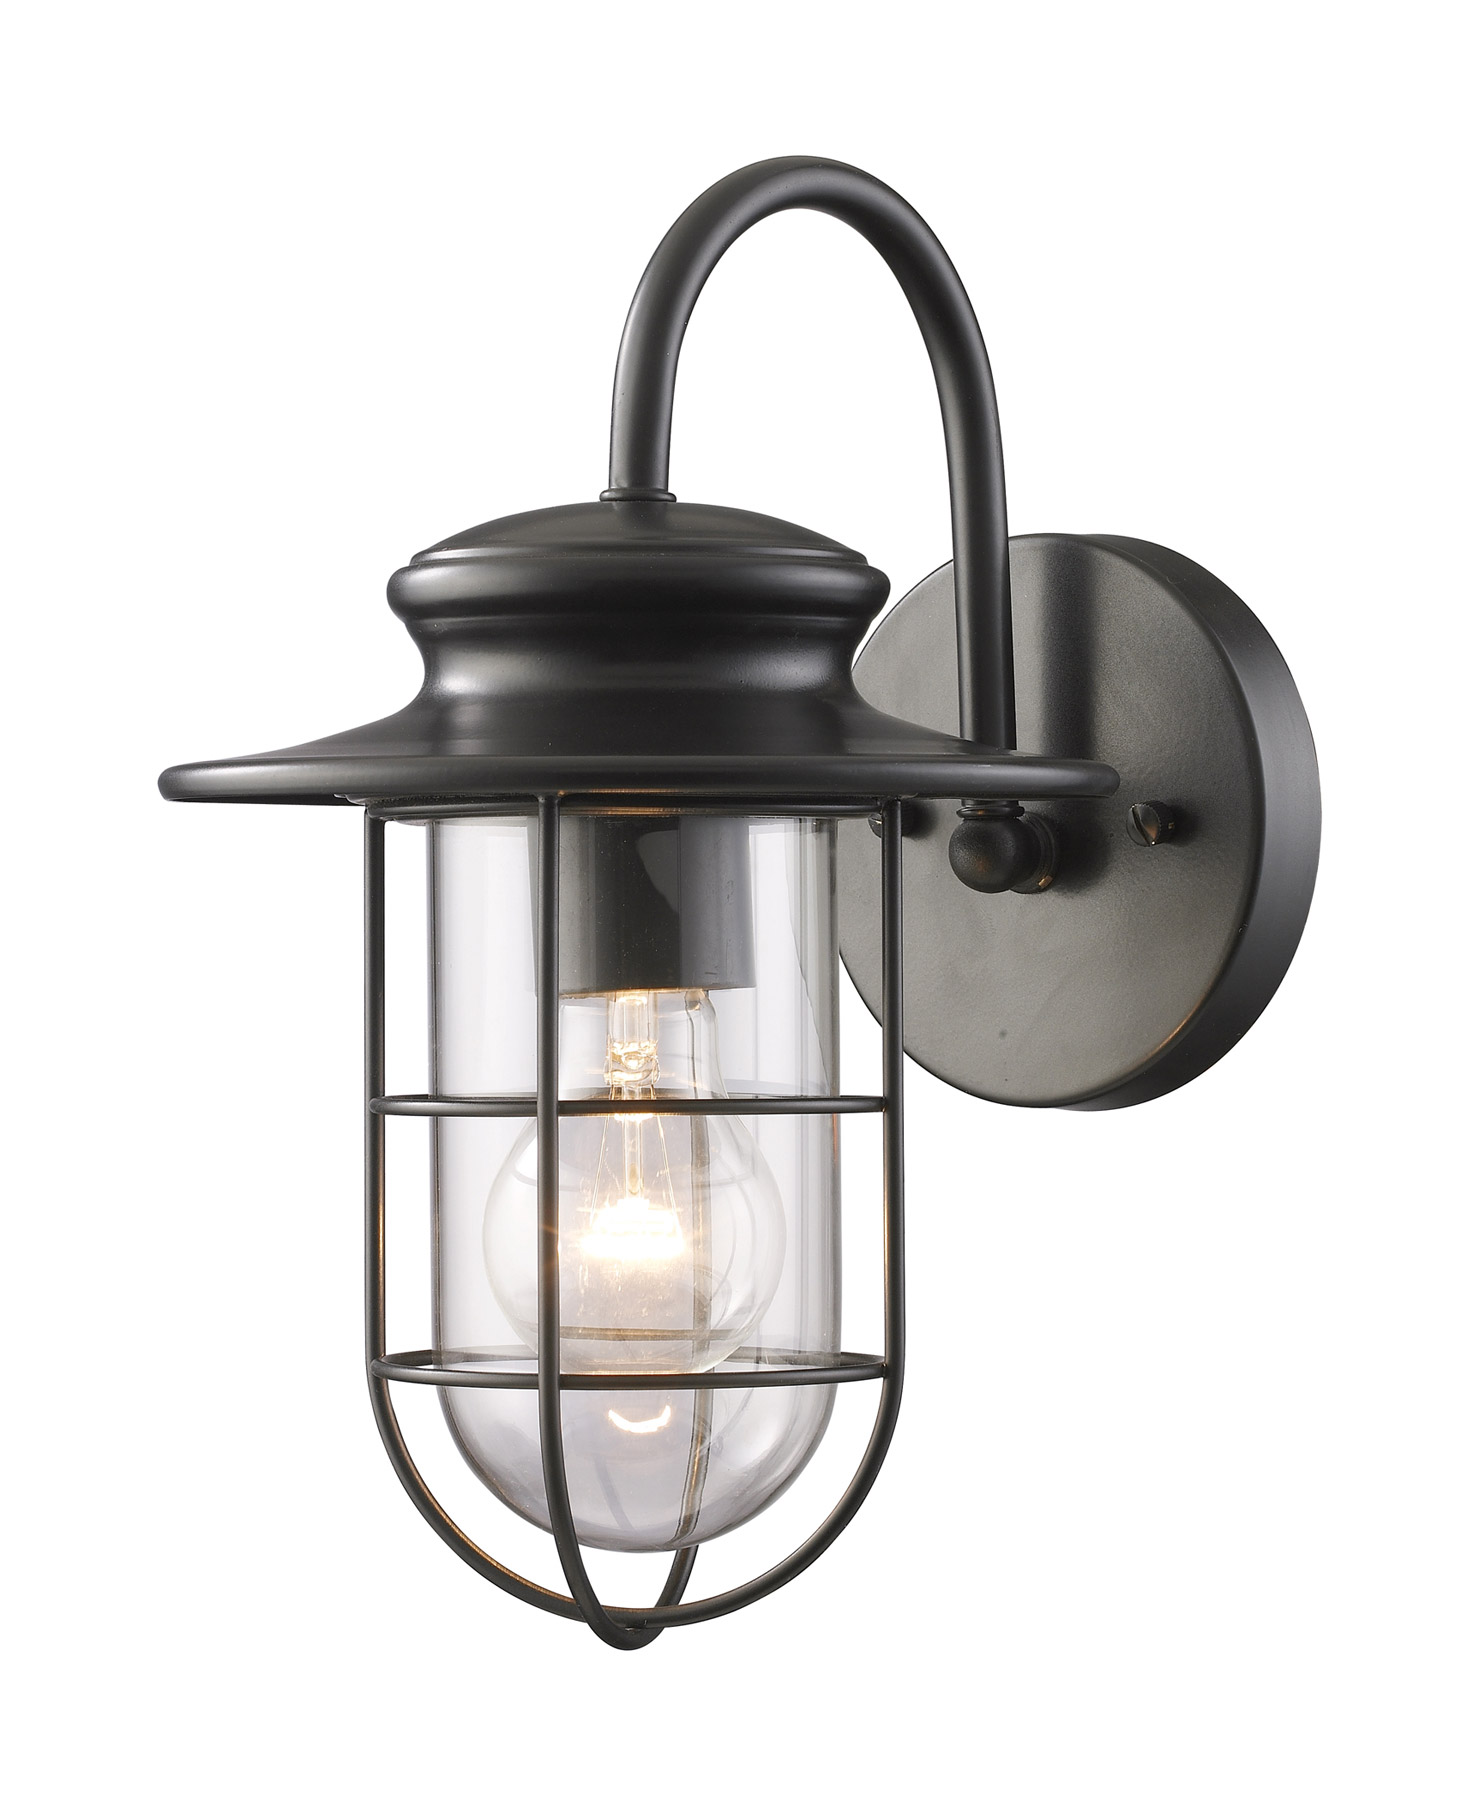 Elk lighting 42284 1 portside outdoor wall mount lantern for Outdoor sconce lighting fixtures